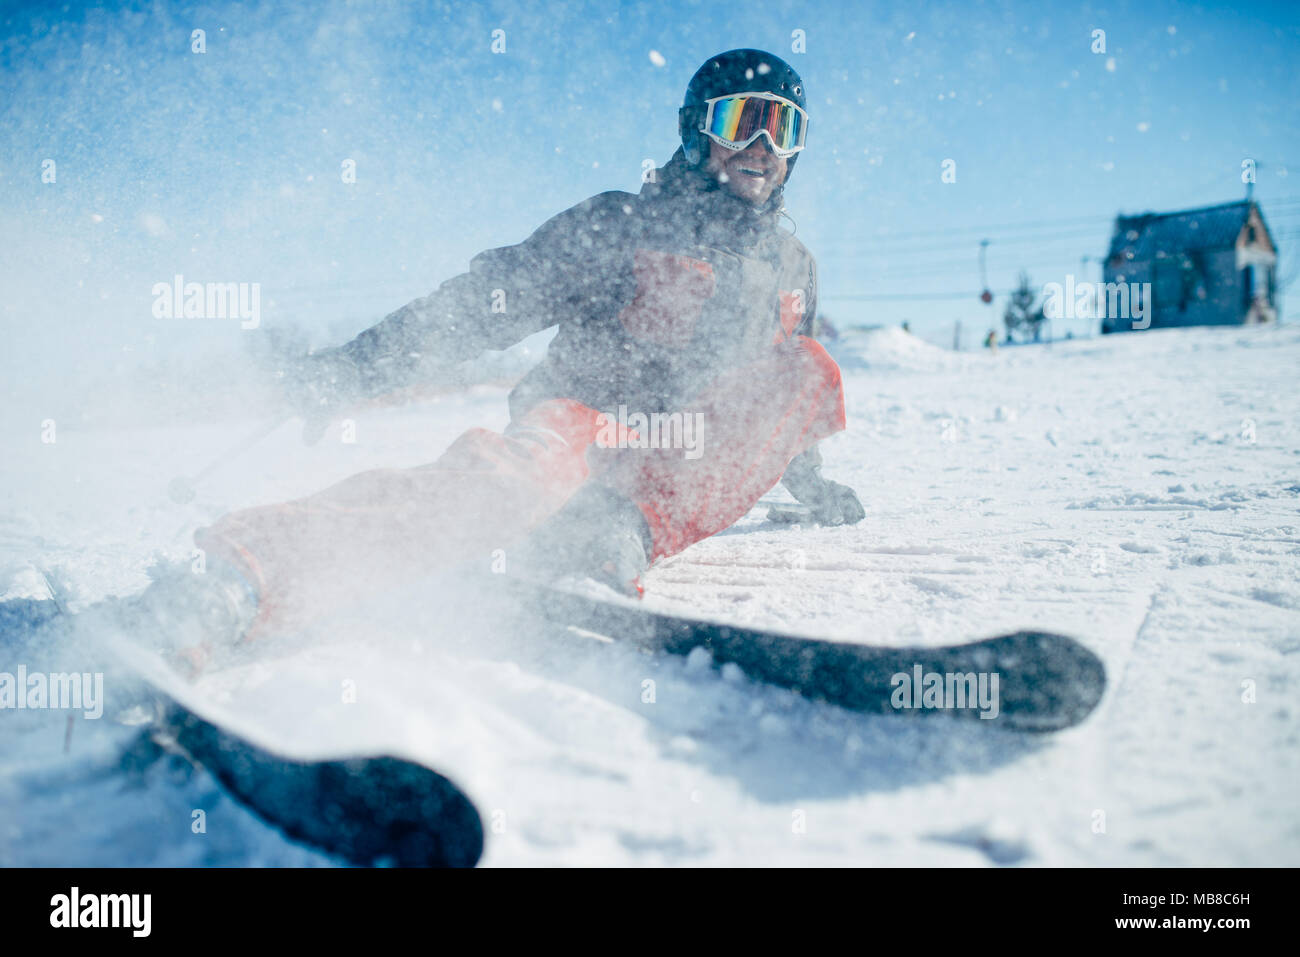 Skier in helmet and glasses lies on snowy surface of speed slope, front view. Winter active sport, extreme lifestyle. Downhill skiing - Stock Image